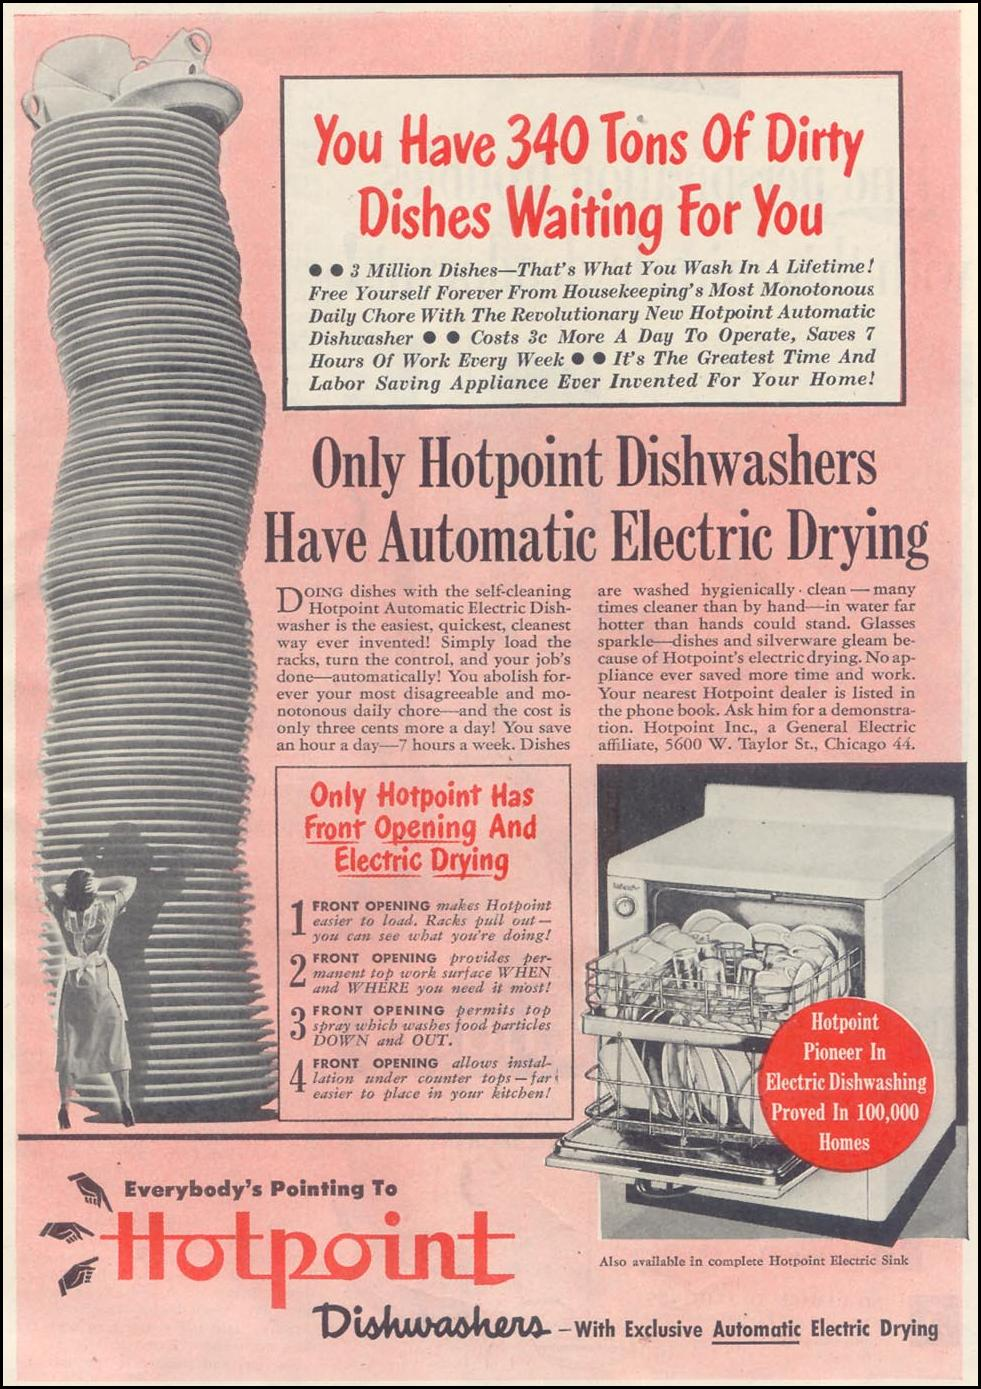 HOTPOINT DISHWASHERS